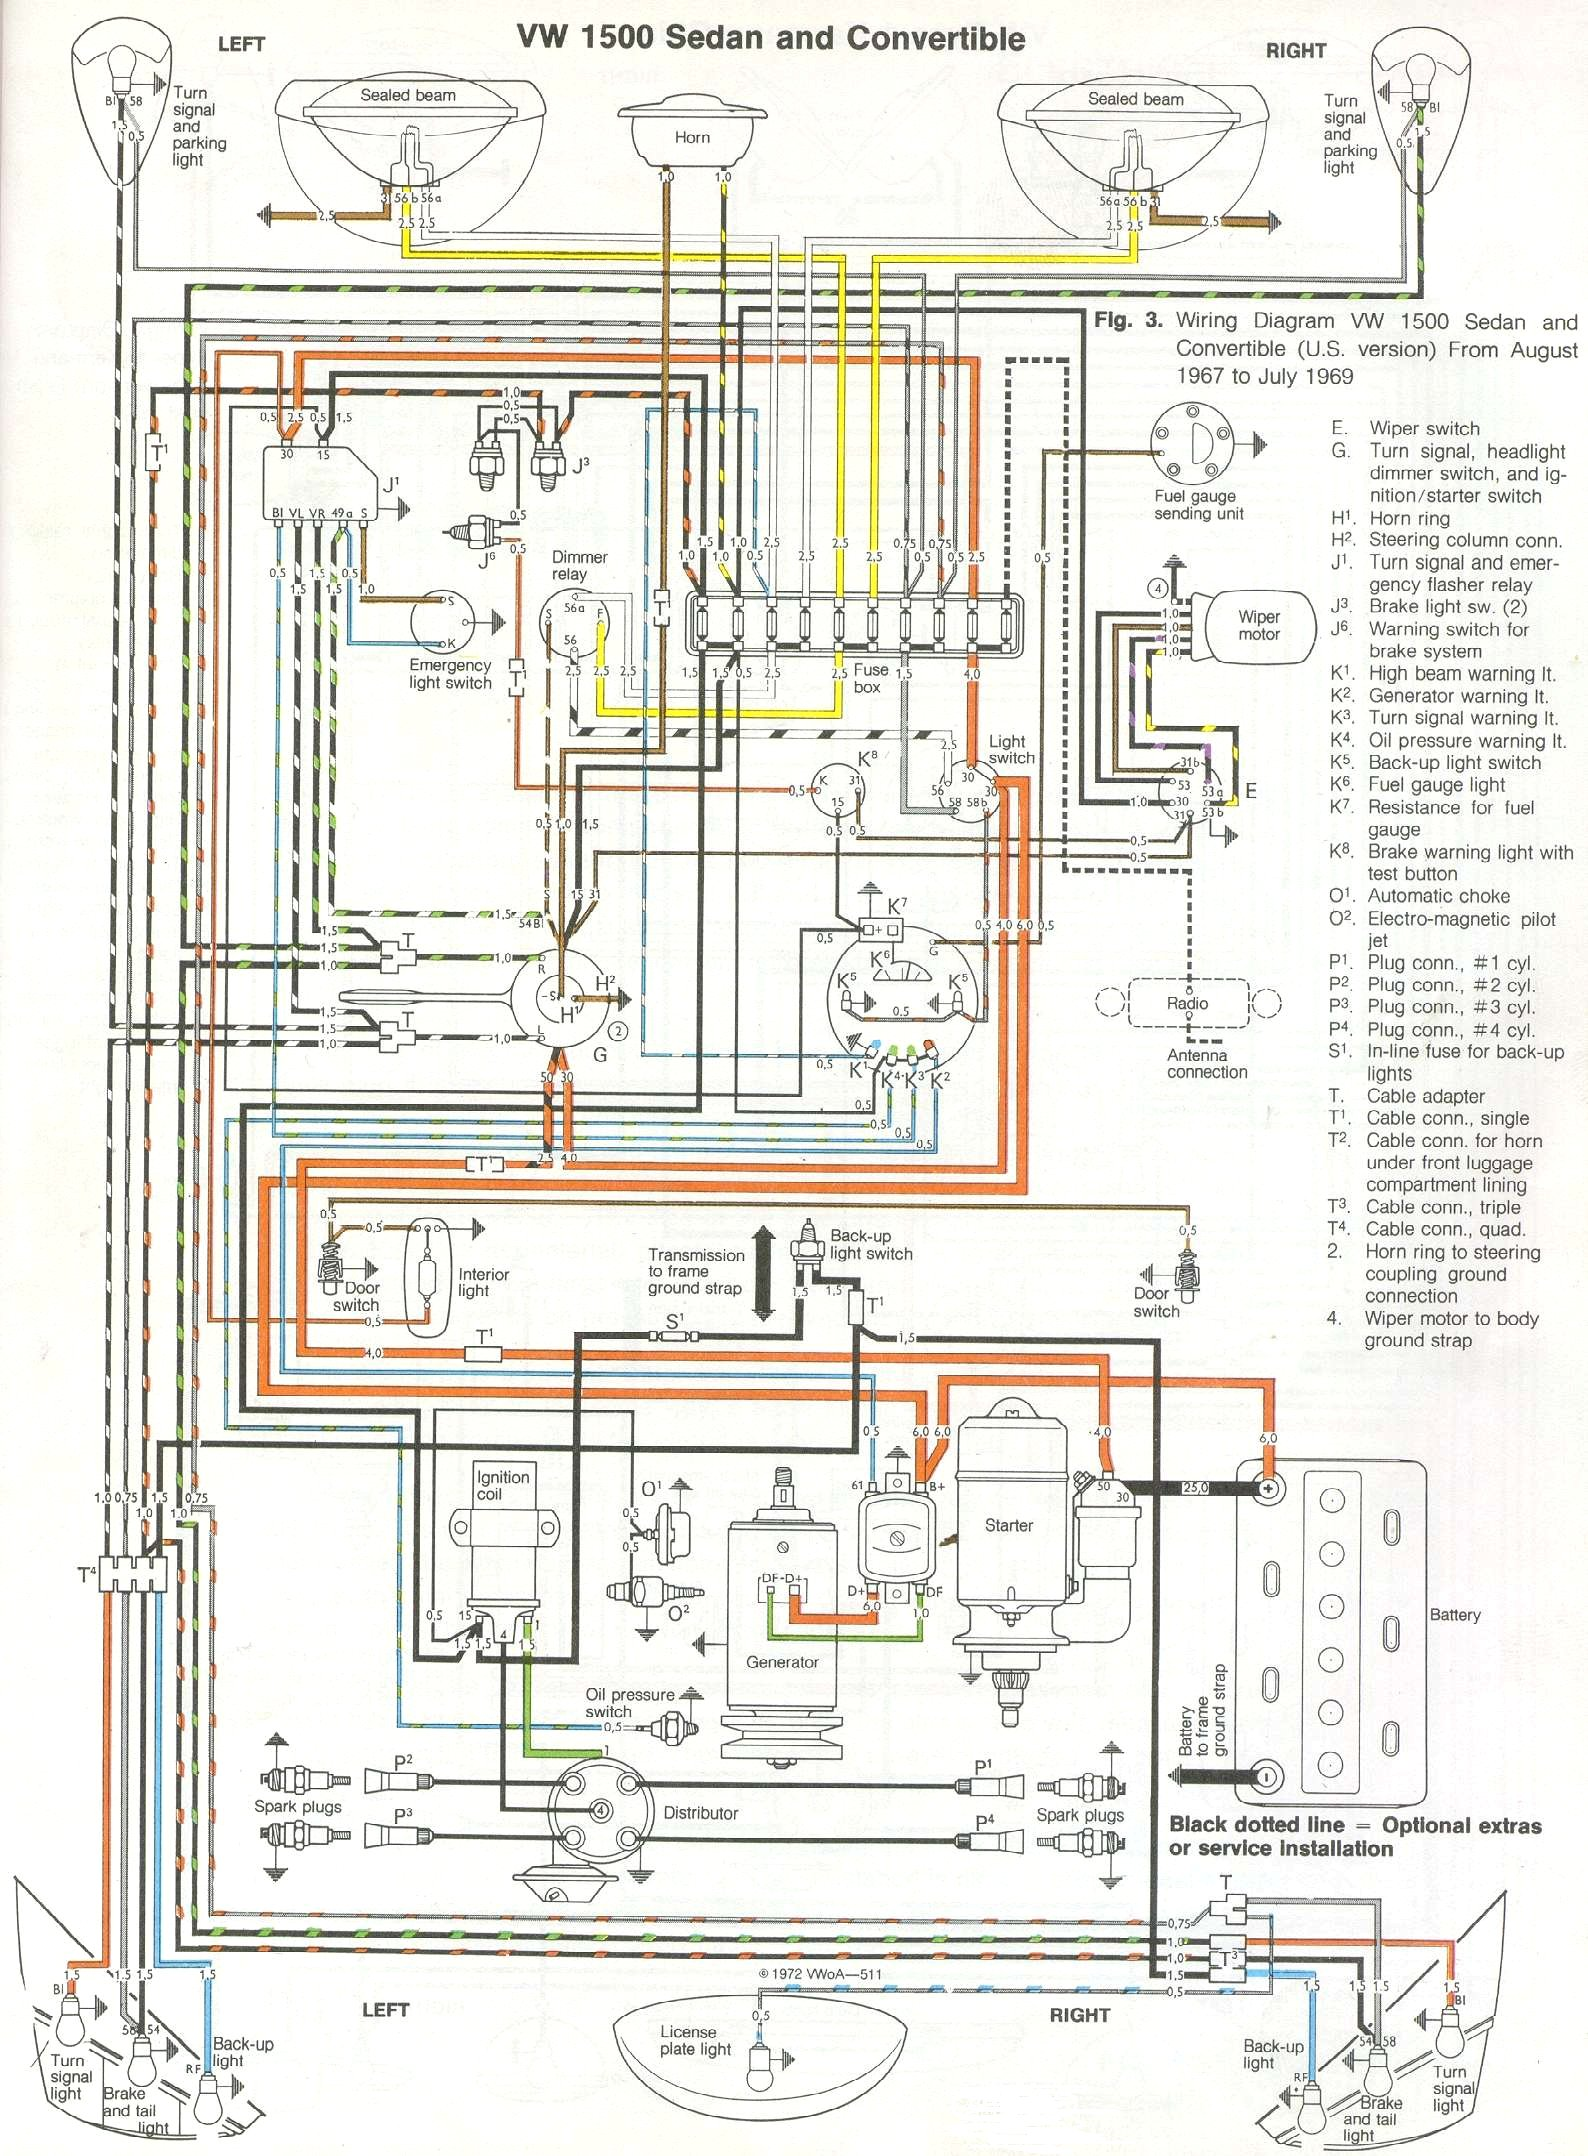 1969 71 beetle wiring diagram thegoldenbug com rh thegoldenbug com 1970 vw bug wiring schematic 1970 vw bug brake wiring diagram